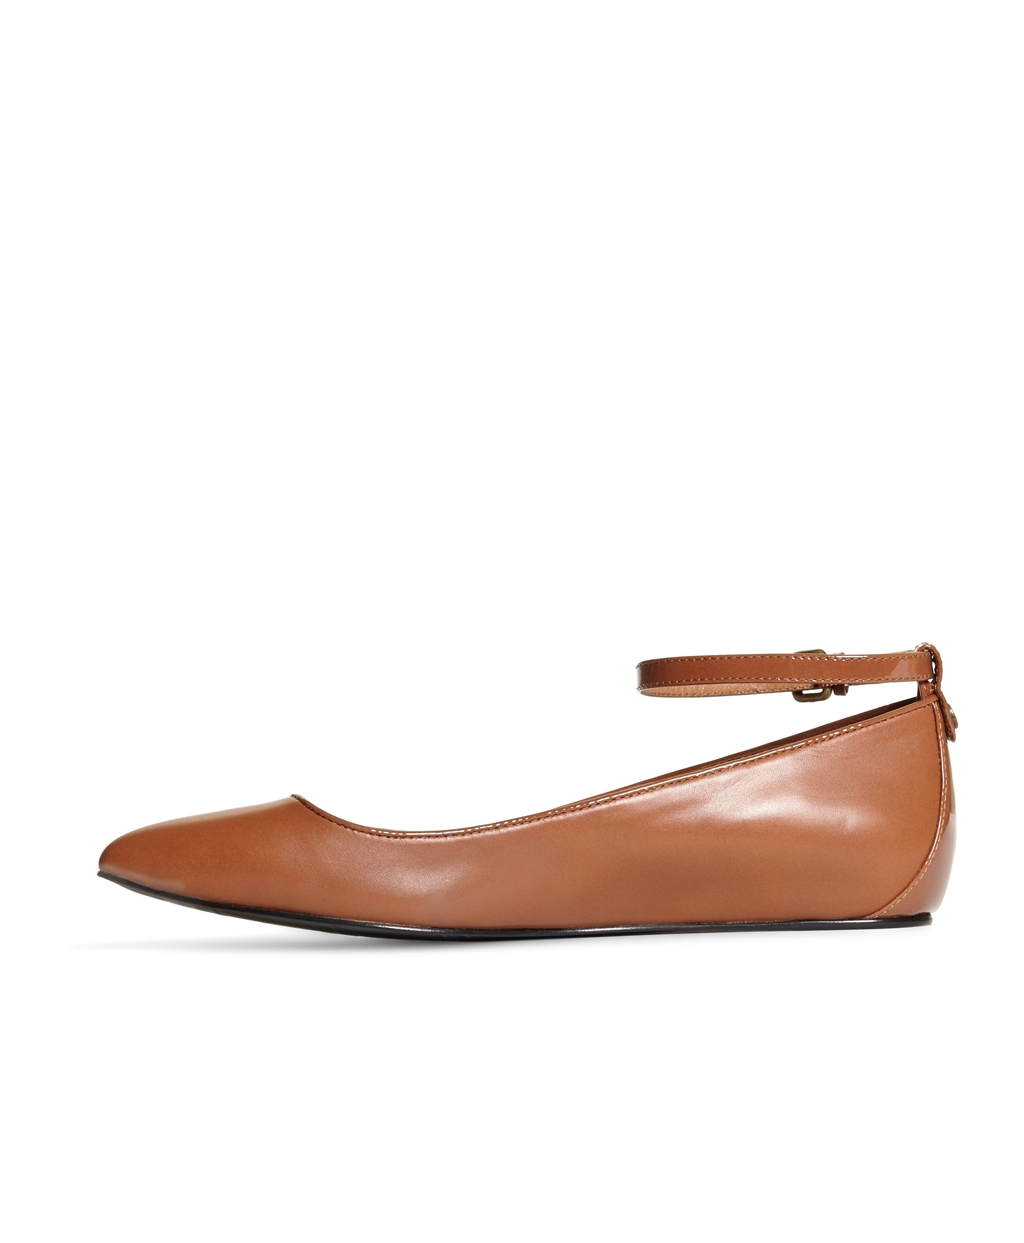 ad2302bb9aa Lyst - Brooks Brothers Leather Ankle Strap Ballet Flats in Brown